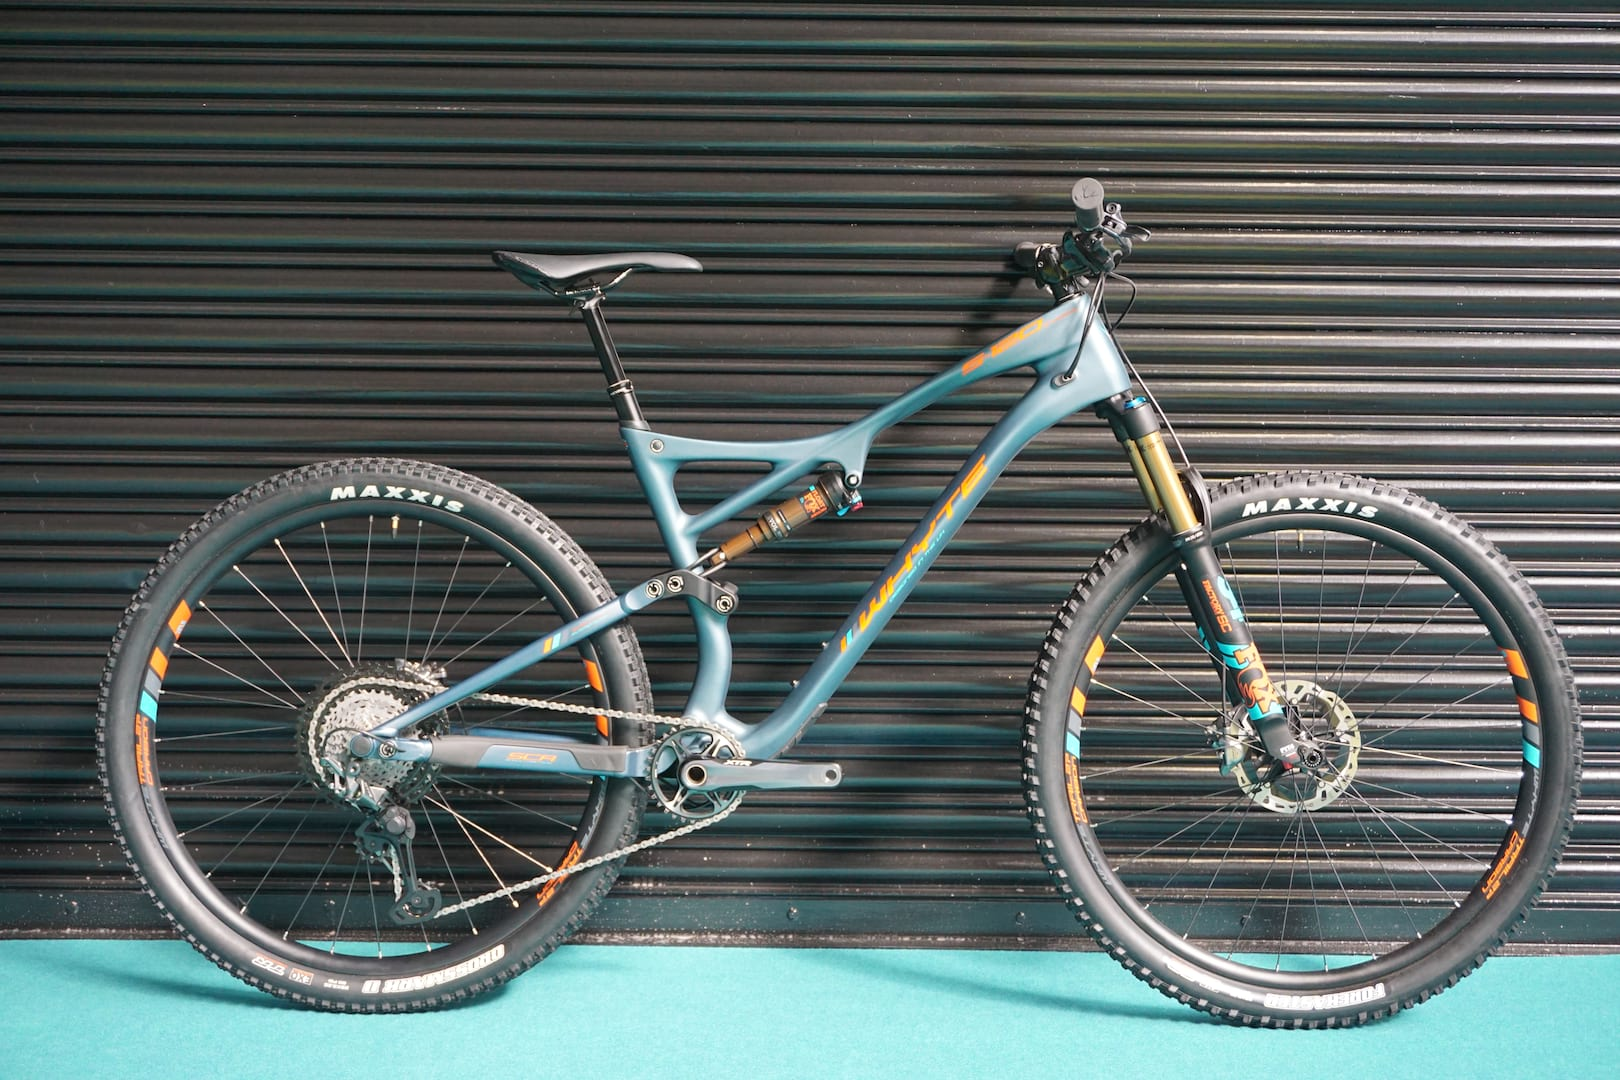 9b4d17b7786 2019 Whyte S120 and G170 C Works 29er First Look - Singletrack Magazine